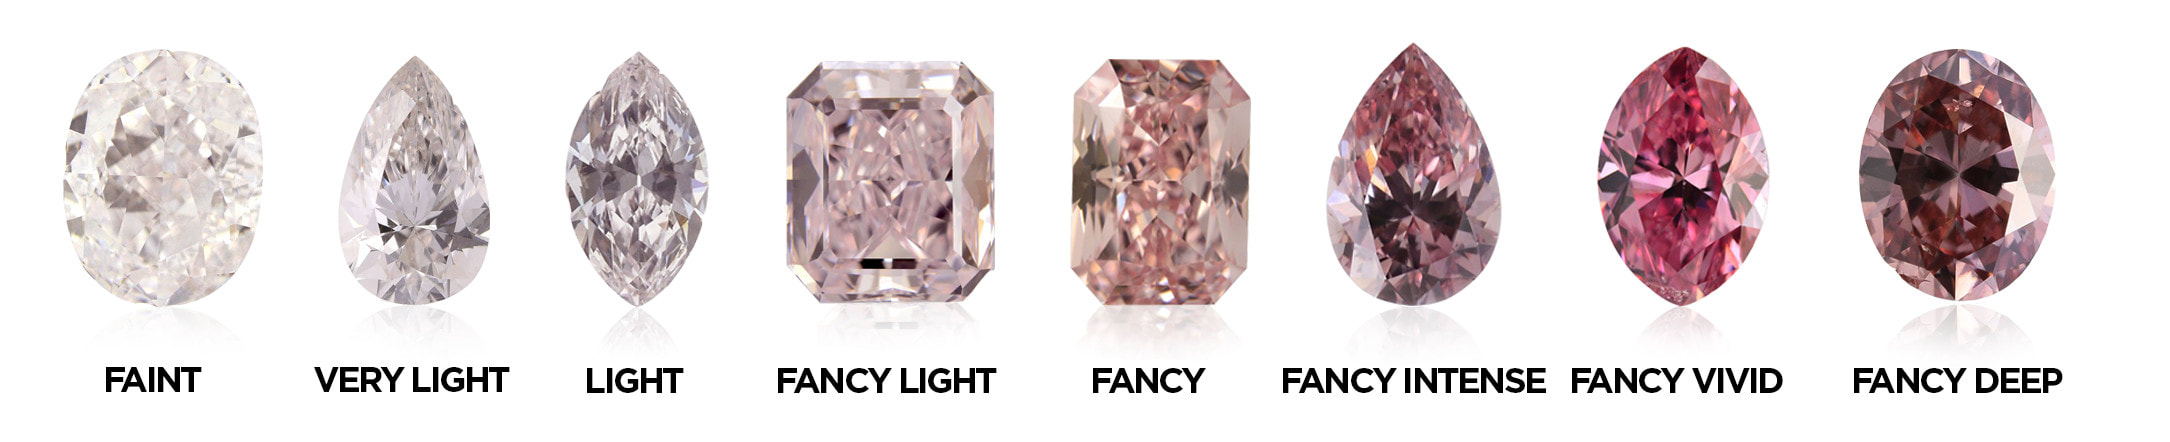 This image shows examples of the intensity of color saturation in diamonds, ranging from faint to fancy deep.